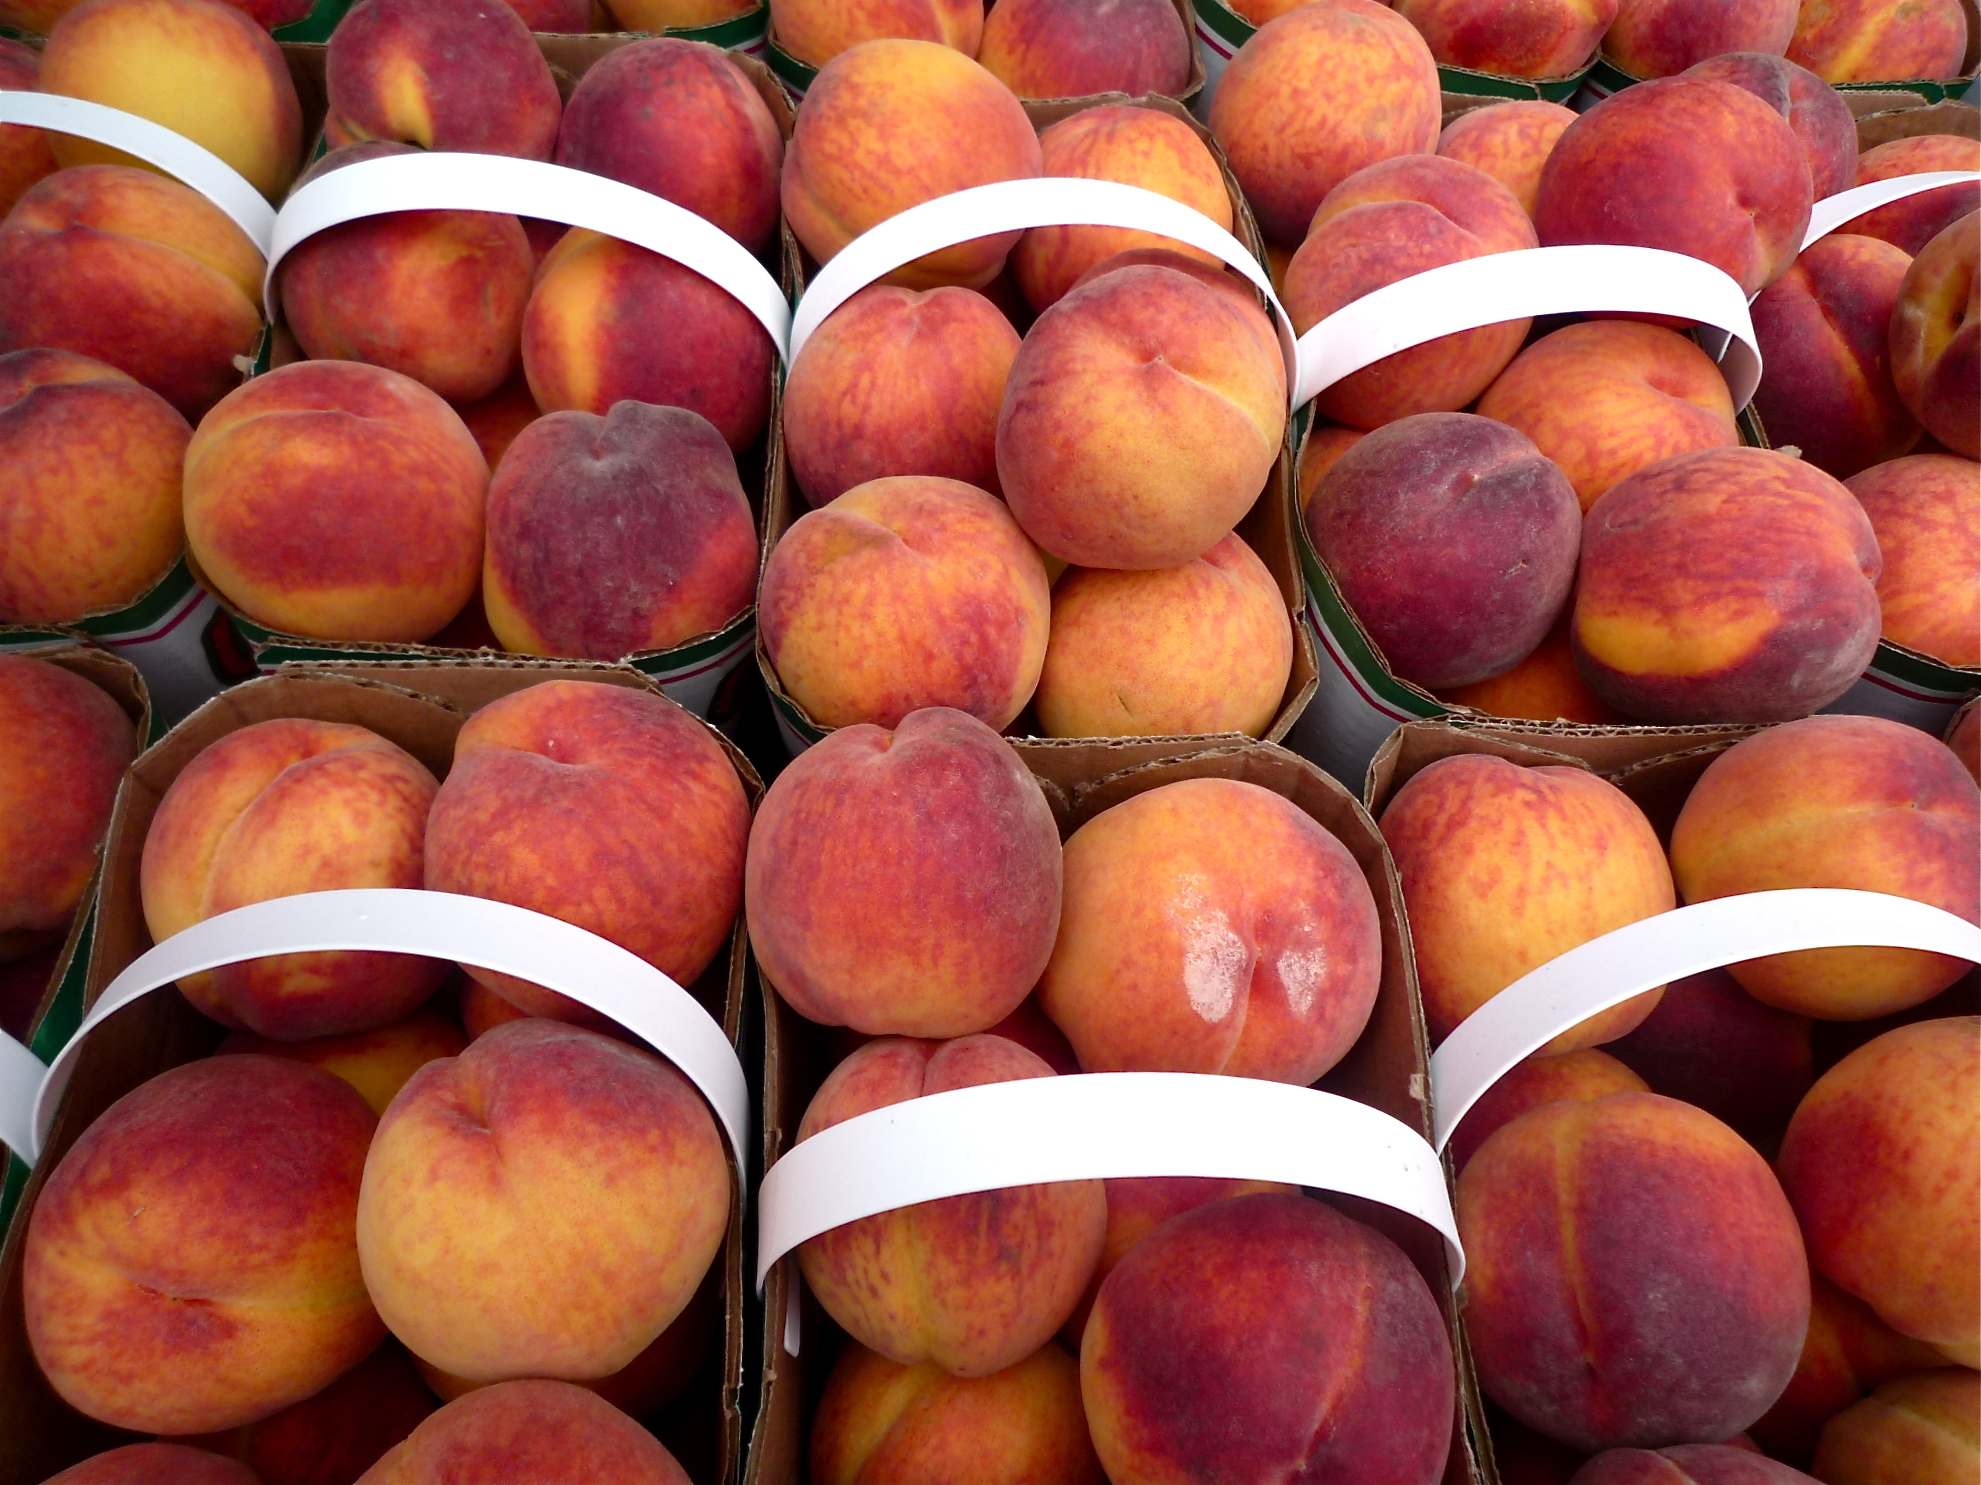 Baskets of peaches at the St. Lawrence Market, Toronto